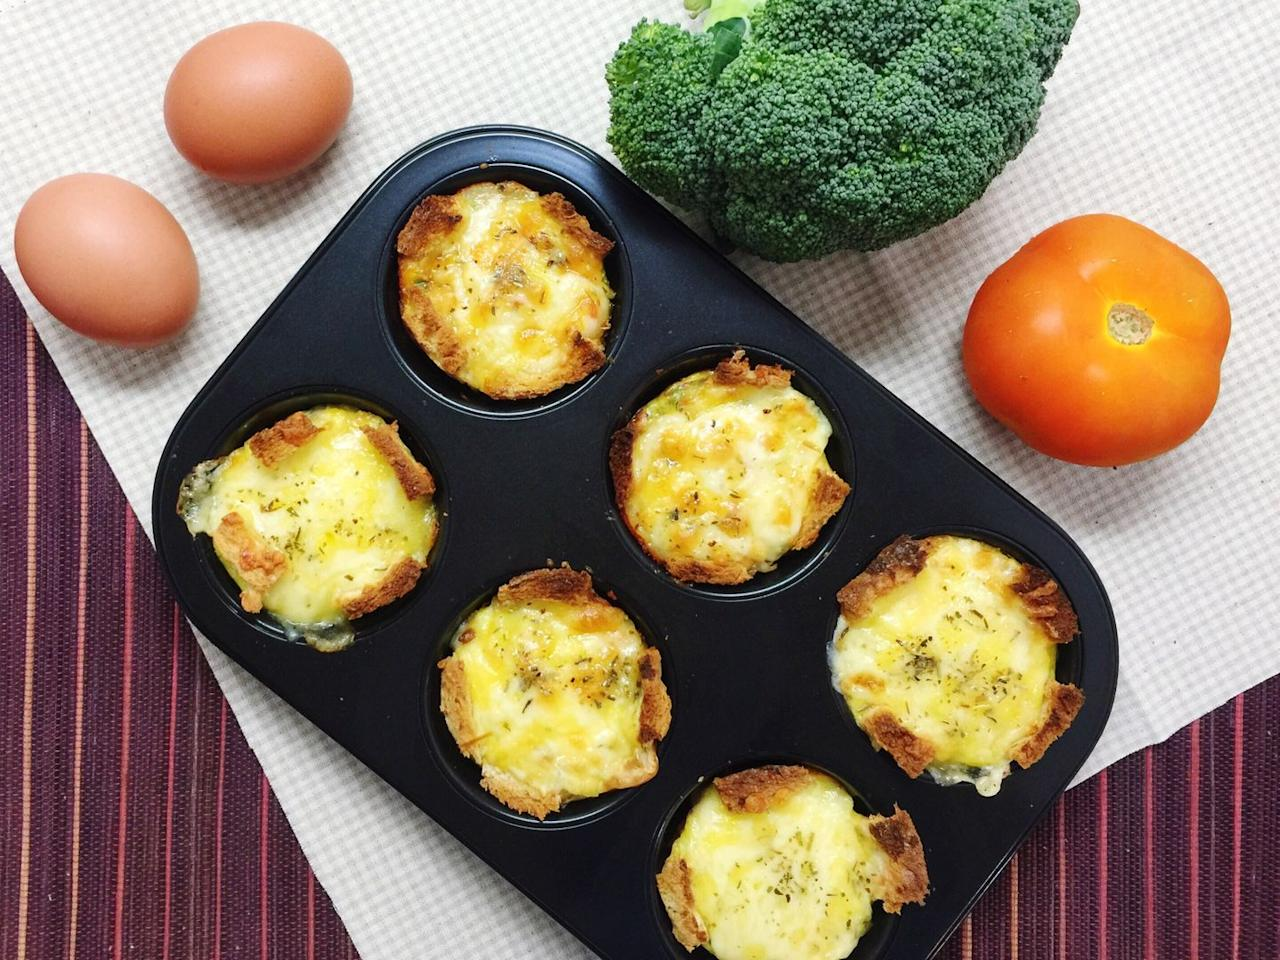 "<p>When done right, meal prep can change your whole life. Take an hour out of your day on a Sunday to make a batch of egg muffins so that you can have them for a delicious and healthy breakfast each morning. They don't take much time to make, and then you can simply heat them up in the morning and enjoy. Not to mention they're also perfect for people on the go. Here's <a href=""https://www.delish.com/cooking/recipe-ideas/a25563943/egg-muffins-recipe/"" target=""_blank"">one simple recipe from Delish</a>, but there are about a million different ways to make these.</p>"